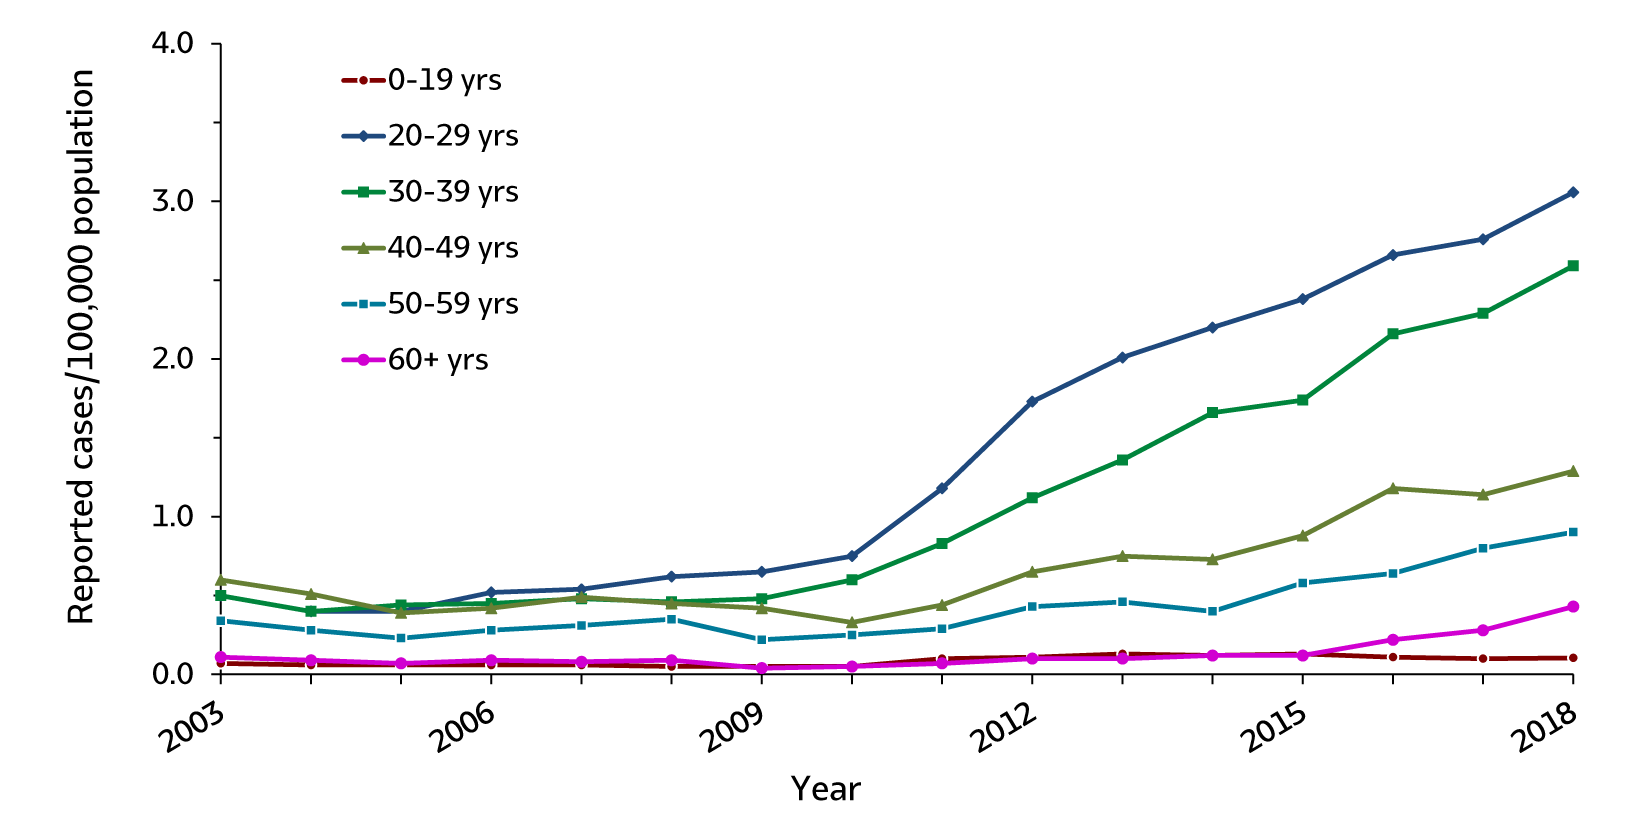 Figure 3.4. The line graph shows trends in rates of acute hepatitis C by age groups (0 – 19 years, 20 – 29 years, 30 – 39 years, 40 – 49 years, 50 – 59 years, and 60 years and older) for 2003 through 2018. Apart from age group aged 0-19 years, the rates of acute hepatitis C have increased during the time period.  There was a greater increase in reported acute hepatitis C cases for the 20 – 29 and 30 – 39 age groups, relative to other age groups.